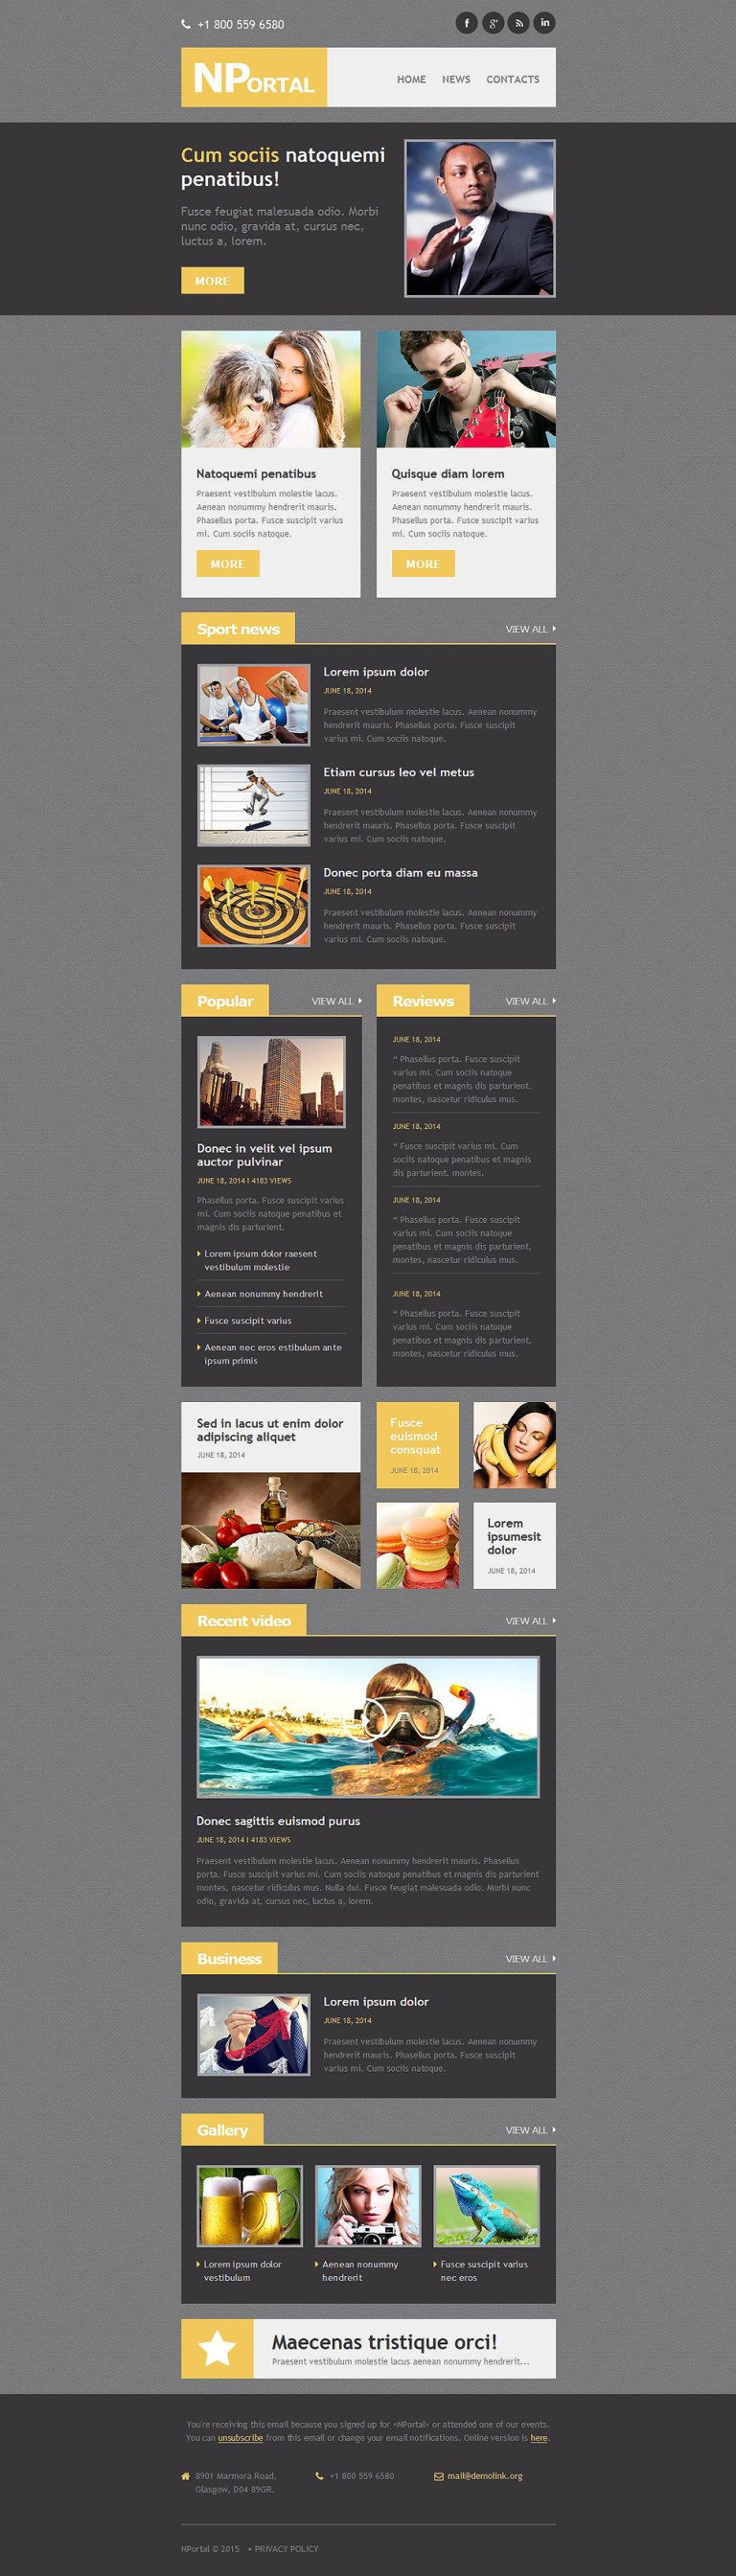 News Portal Responsive Newsletter Template New Screenshots BIG